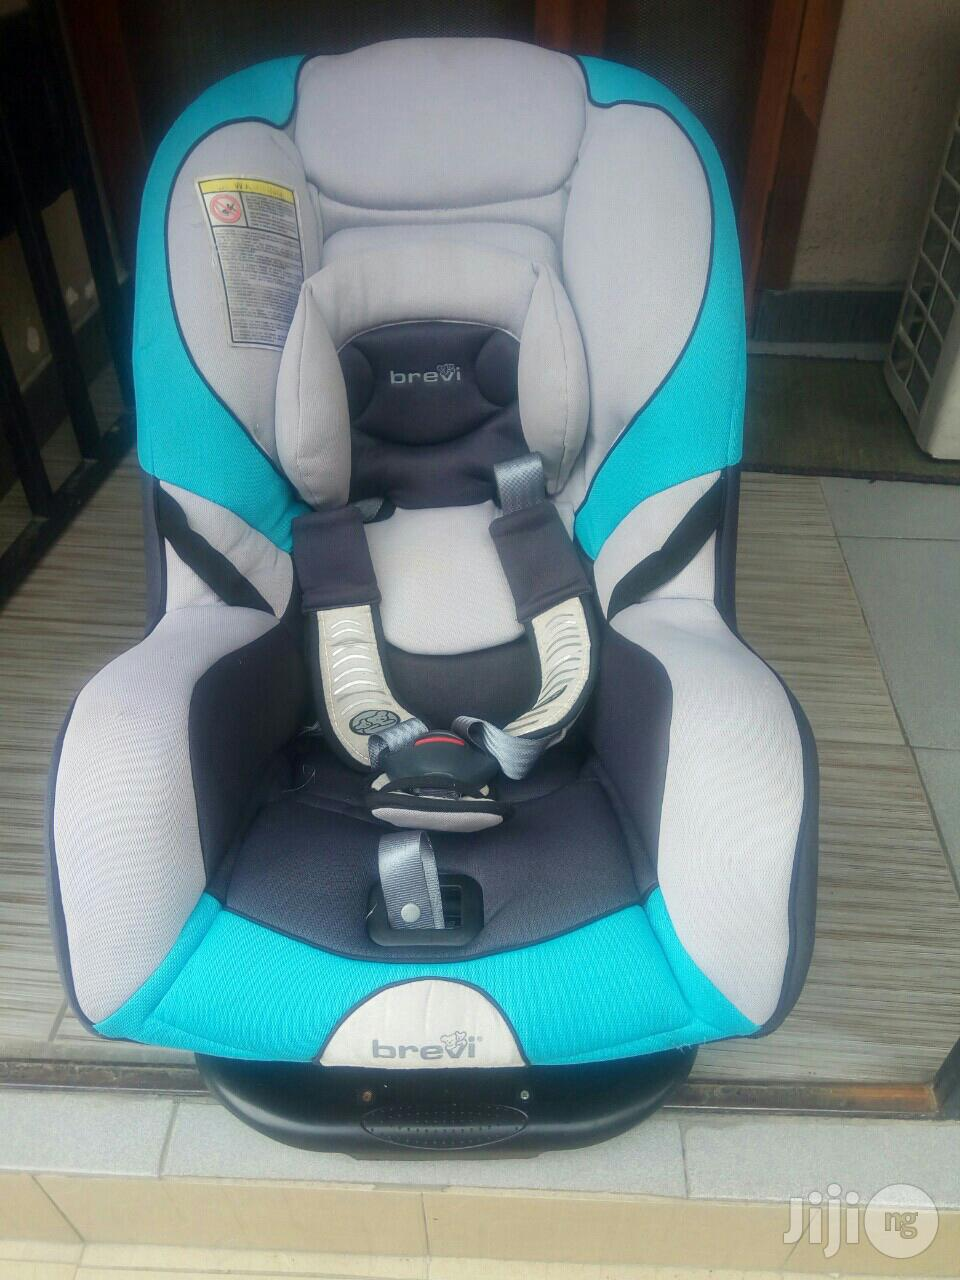 Tokunbo Bravo Convertible Toddler Baby Car Seat | Children's Gear & Safety for sale in Lagos State, Nigeria